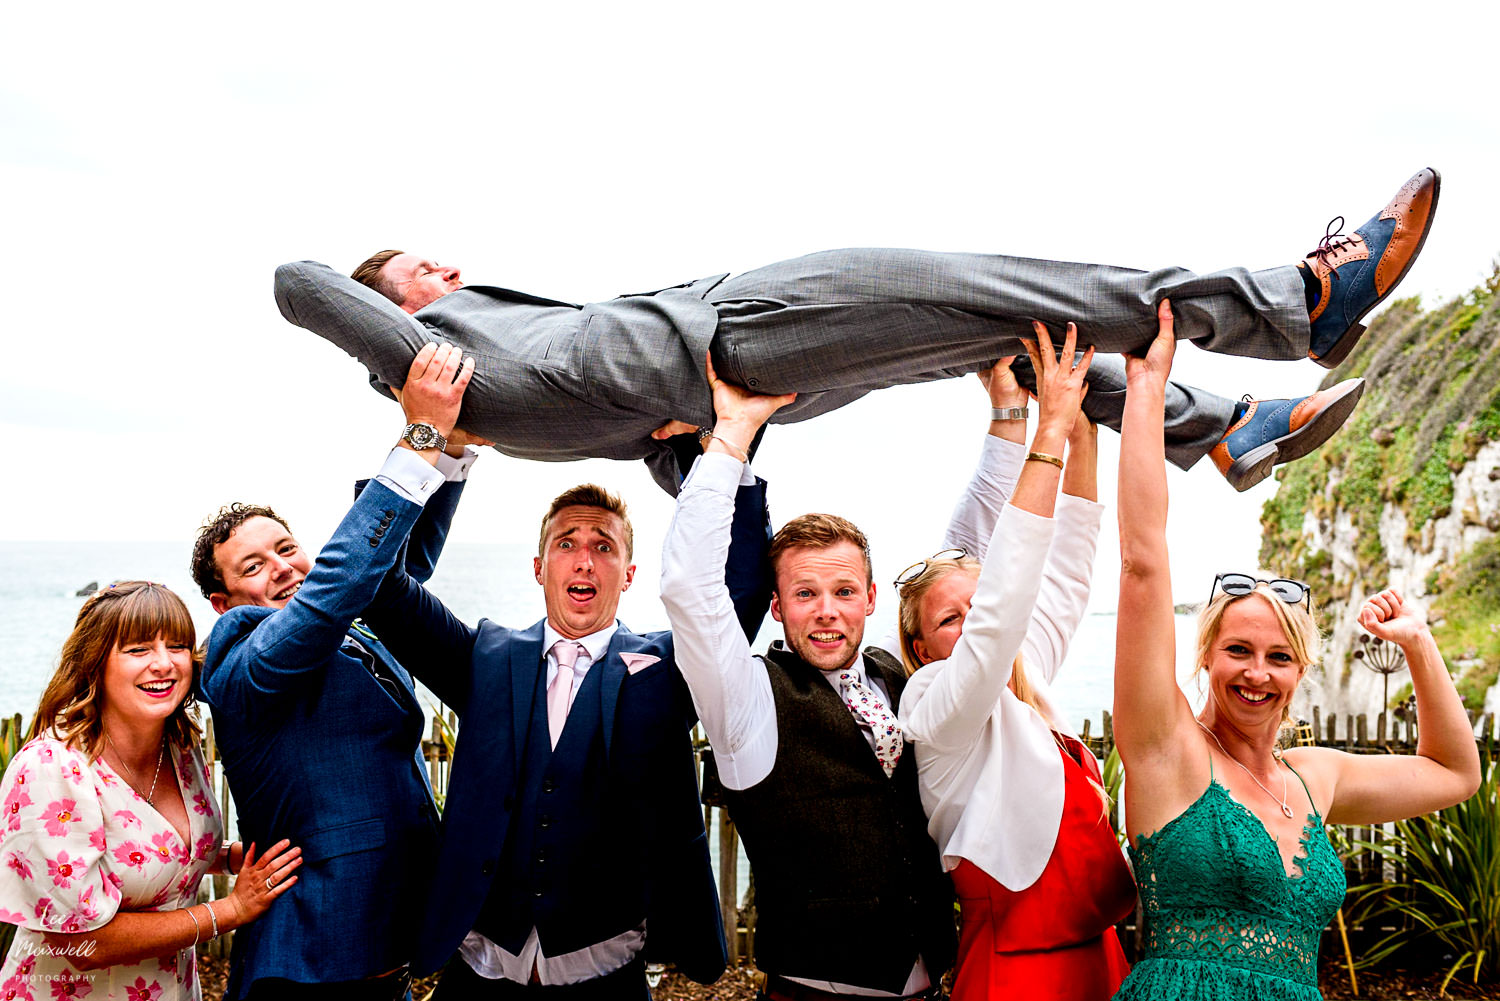 Friends lifting groom in the air